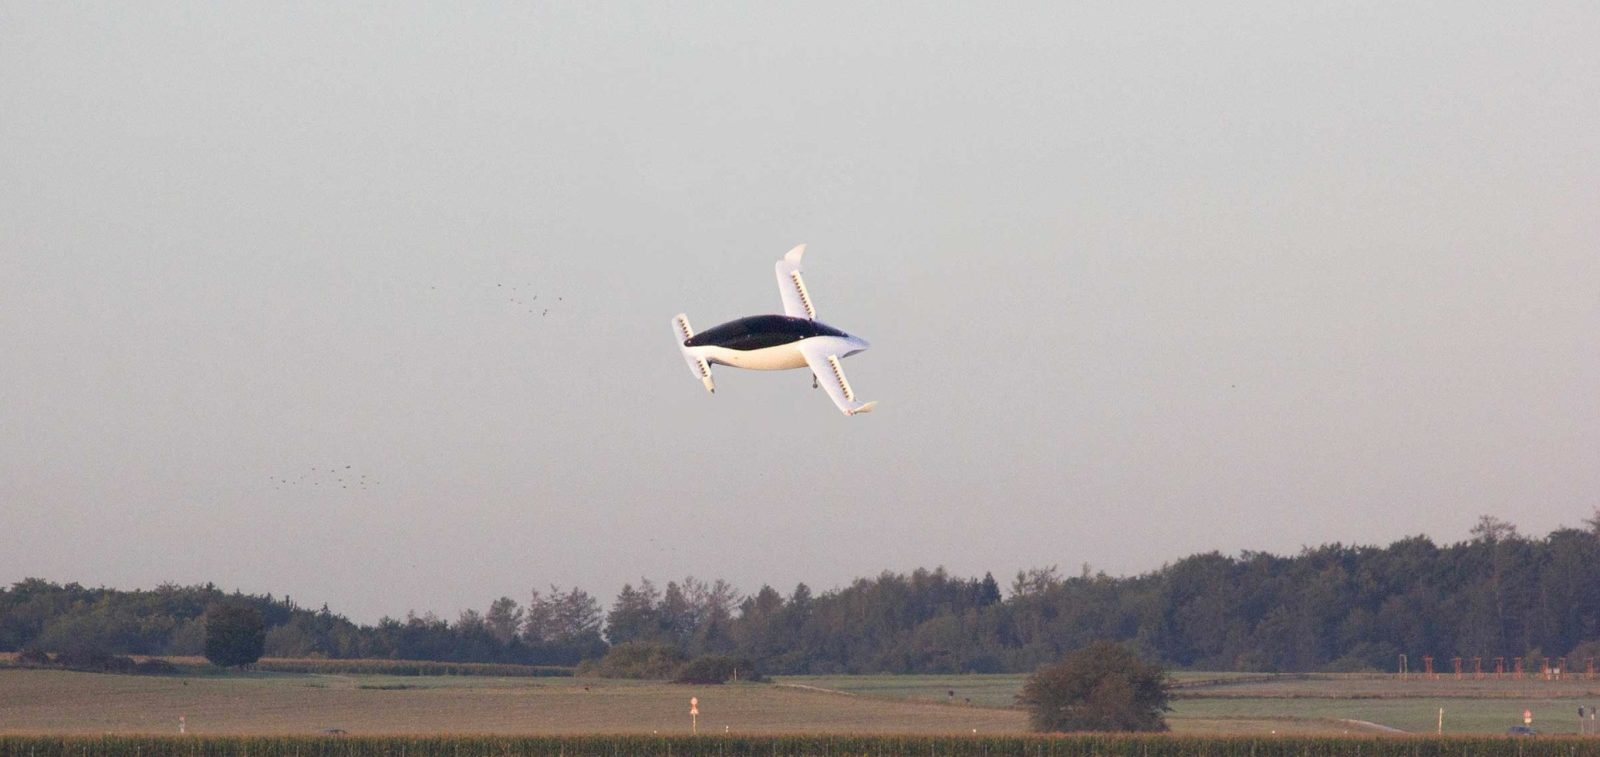 Watch Lilium's electric aircraft for 'air taxi' fly as they move toward production